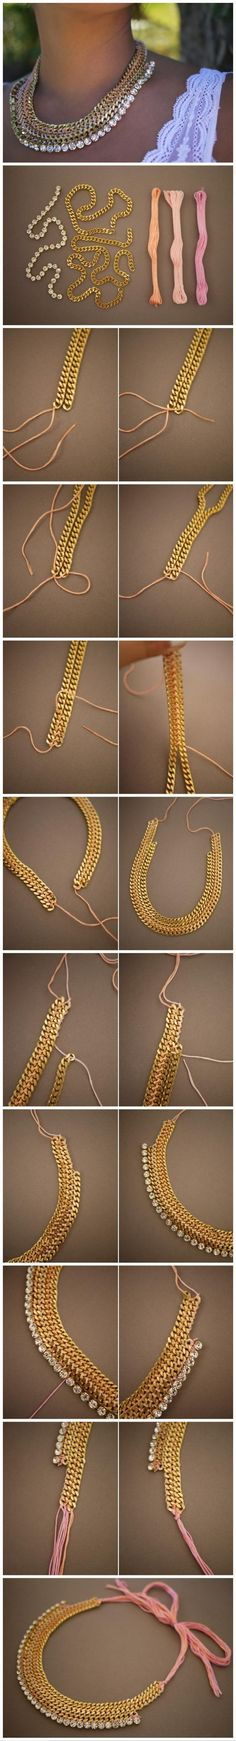 Pretty collar necklace diy. Very elegant and stunning!